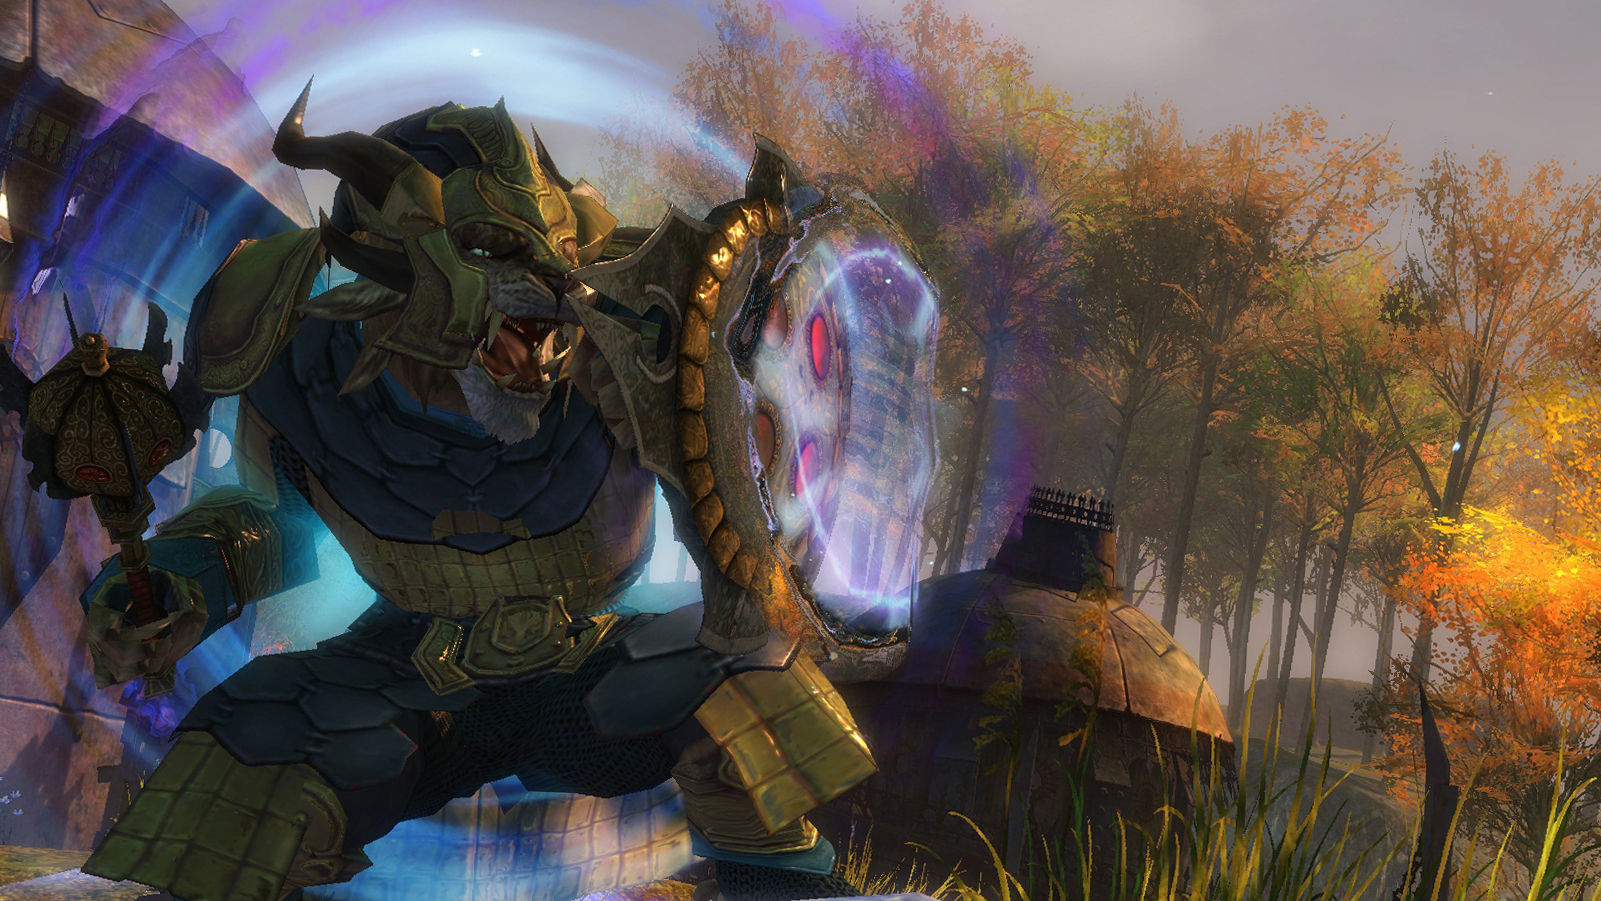 IMAGE(http://www.guildwars2.com/global/includes/images/screenshots/guardian/guardian03.jpg)